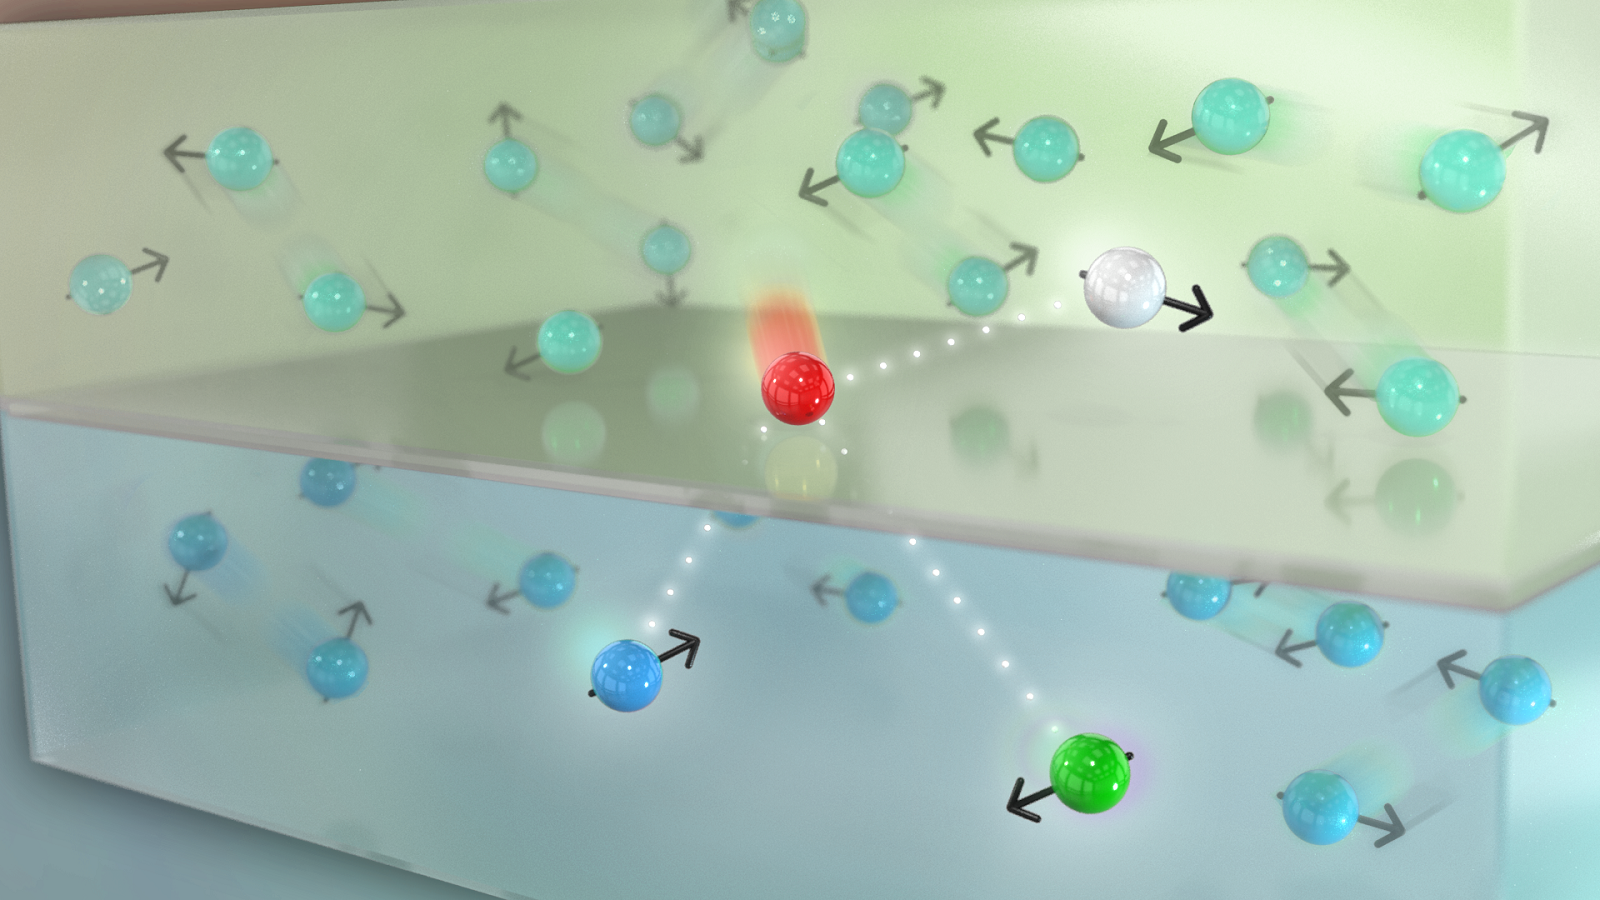 An electron incident on a Weyl semimetal from a normal metal is transmitted into specific states in the Weyl semimetal along with a reflection that conserves momentum, energy, and spin. A net spin current with no net flow of electrons can give rise to a charge current in the Weyl semimetal.